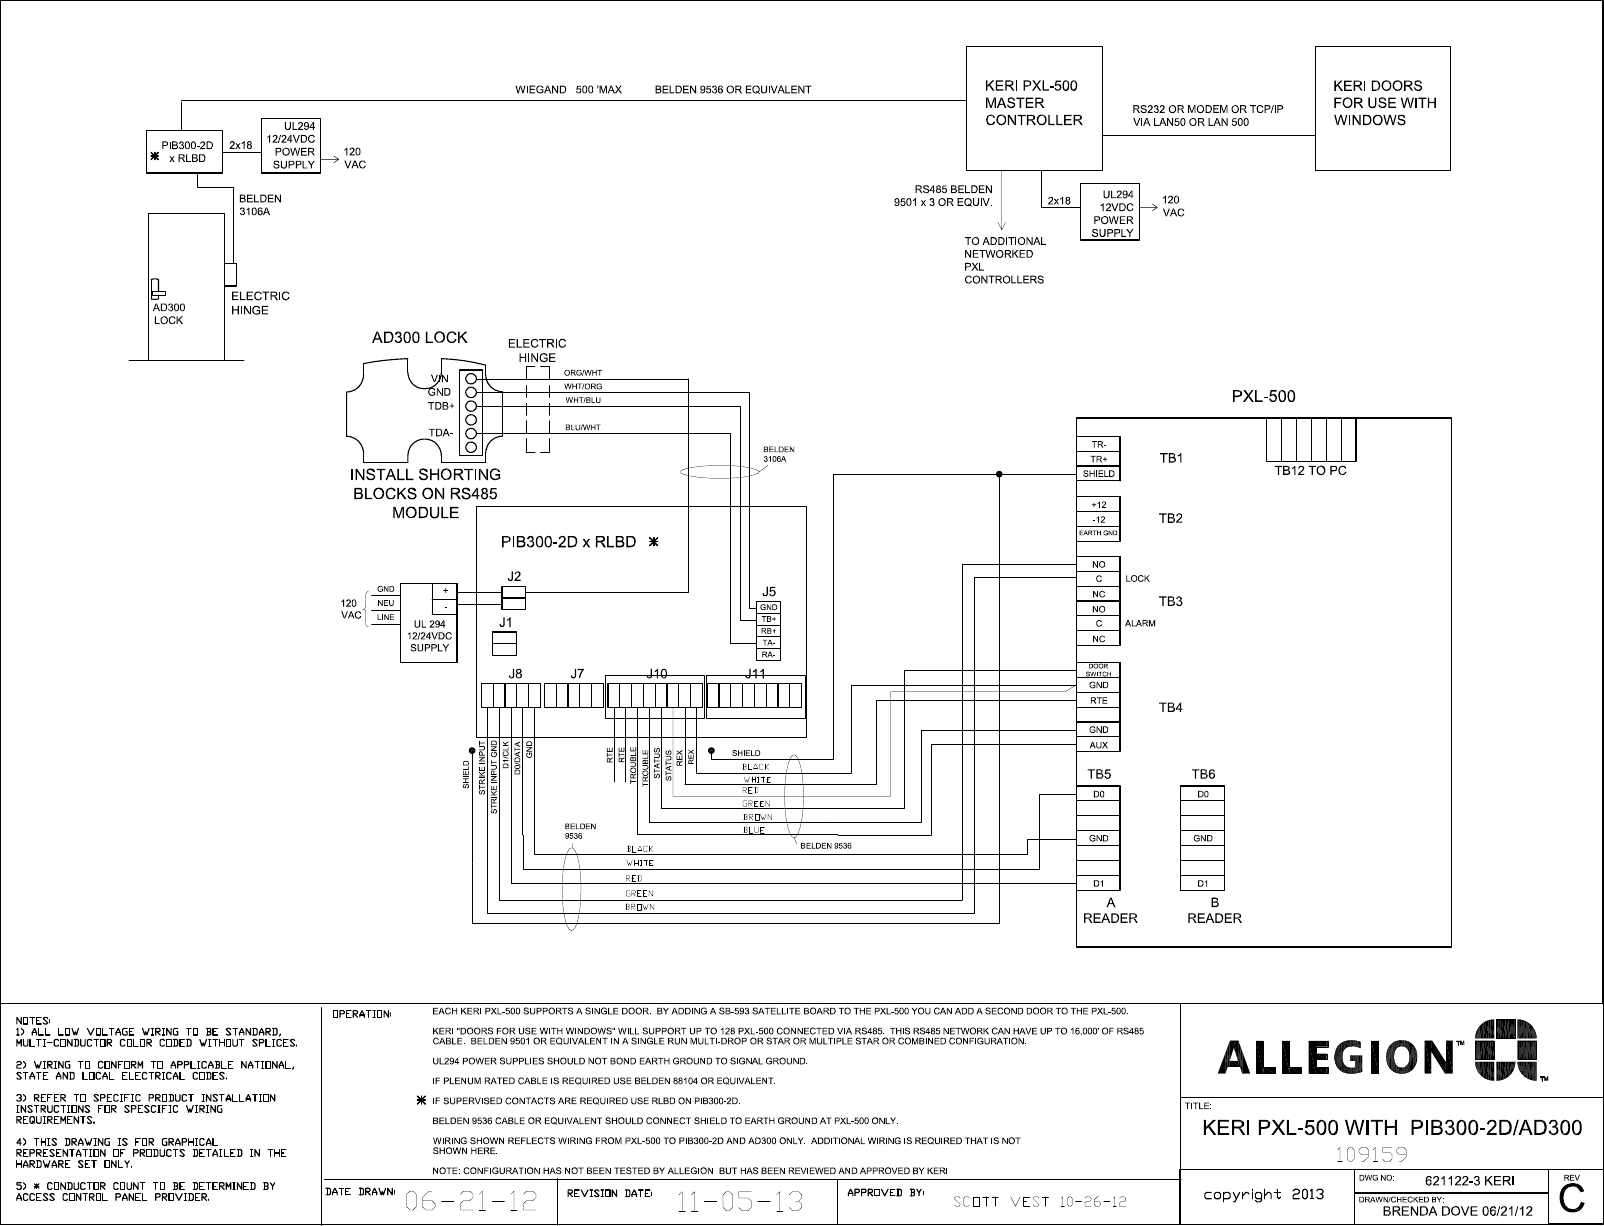 schlage electronics c ad 400 pim400 485 wiring diagram with keri rh usermanual wiki Schlage Commercial Locks Diagram Schlage Cylinder Diagram